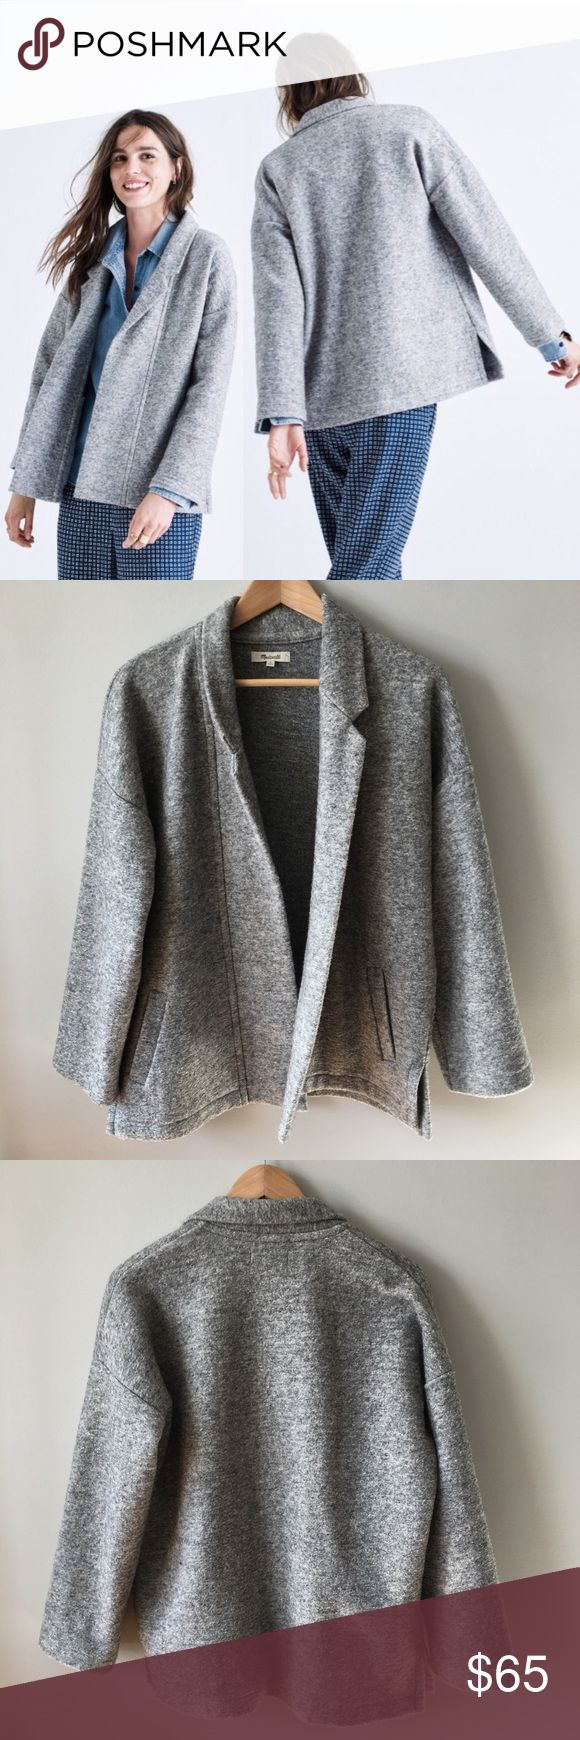 """Madewell Speaker Jacket Part jacket, part cardigan, this easy blazer is what our designers call a """"coatigan."""" Made of a chill-friendly wool blend, this one will keep any look cool but casual. Slightly boxy fit. Wool/bamboo/poly. Dry clean. Item F5722  Re-poshing because sadly it is too big for me. Dry cleaned and worn for a couple of hours - no stains, pilling, or pulls - in excellent condition. Still available on-line! Fall 2016 Collection. Bundle & save 💰! Sorry - 🚫 trades! Madewell…"""